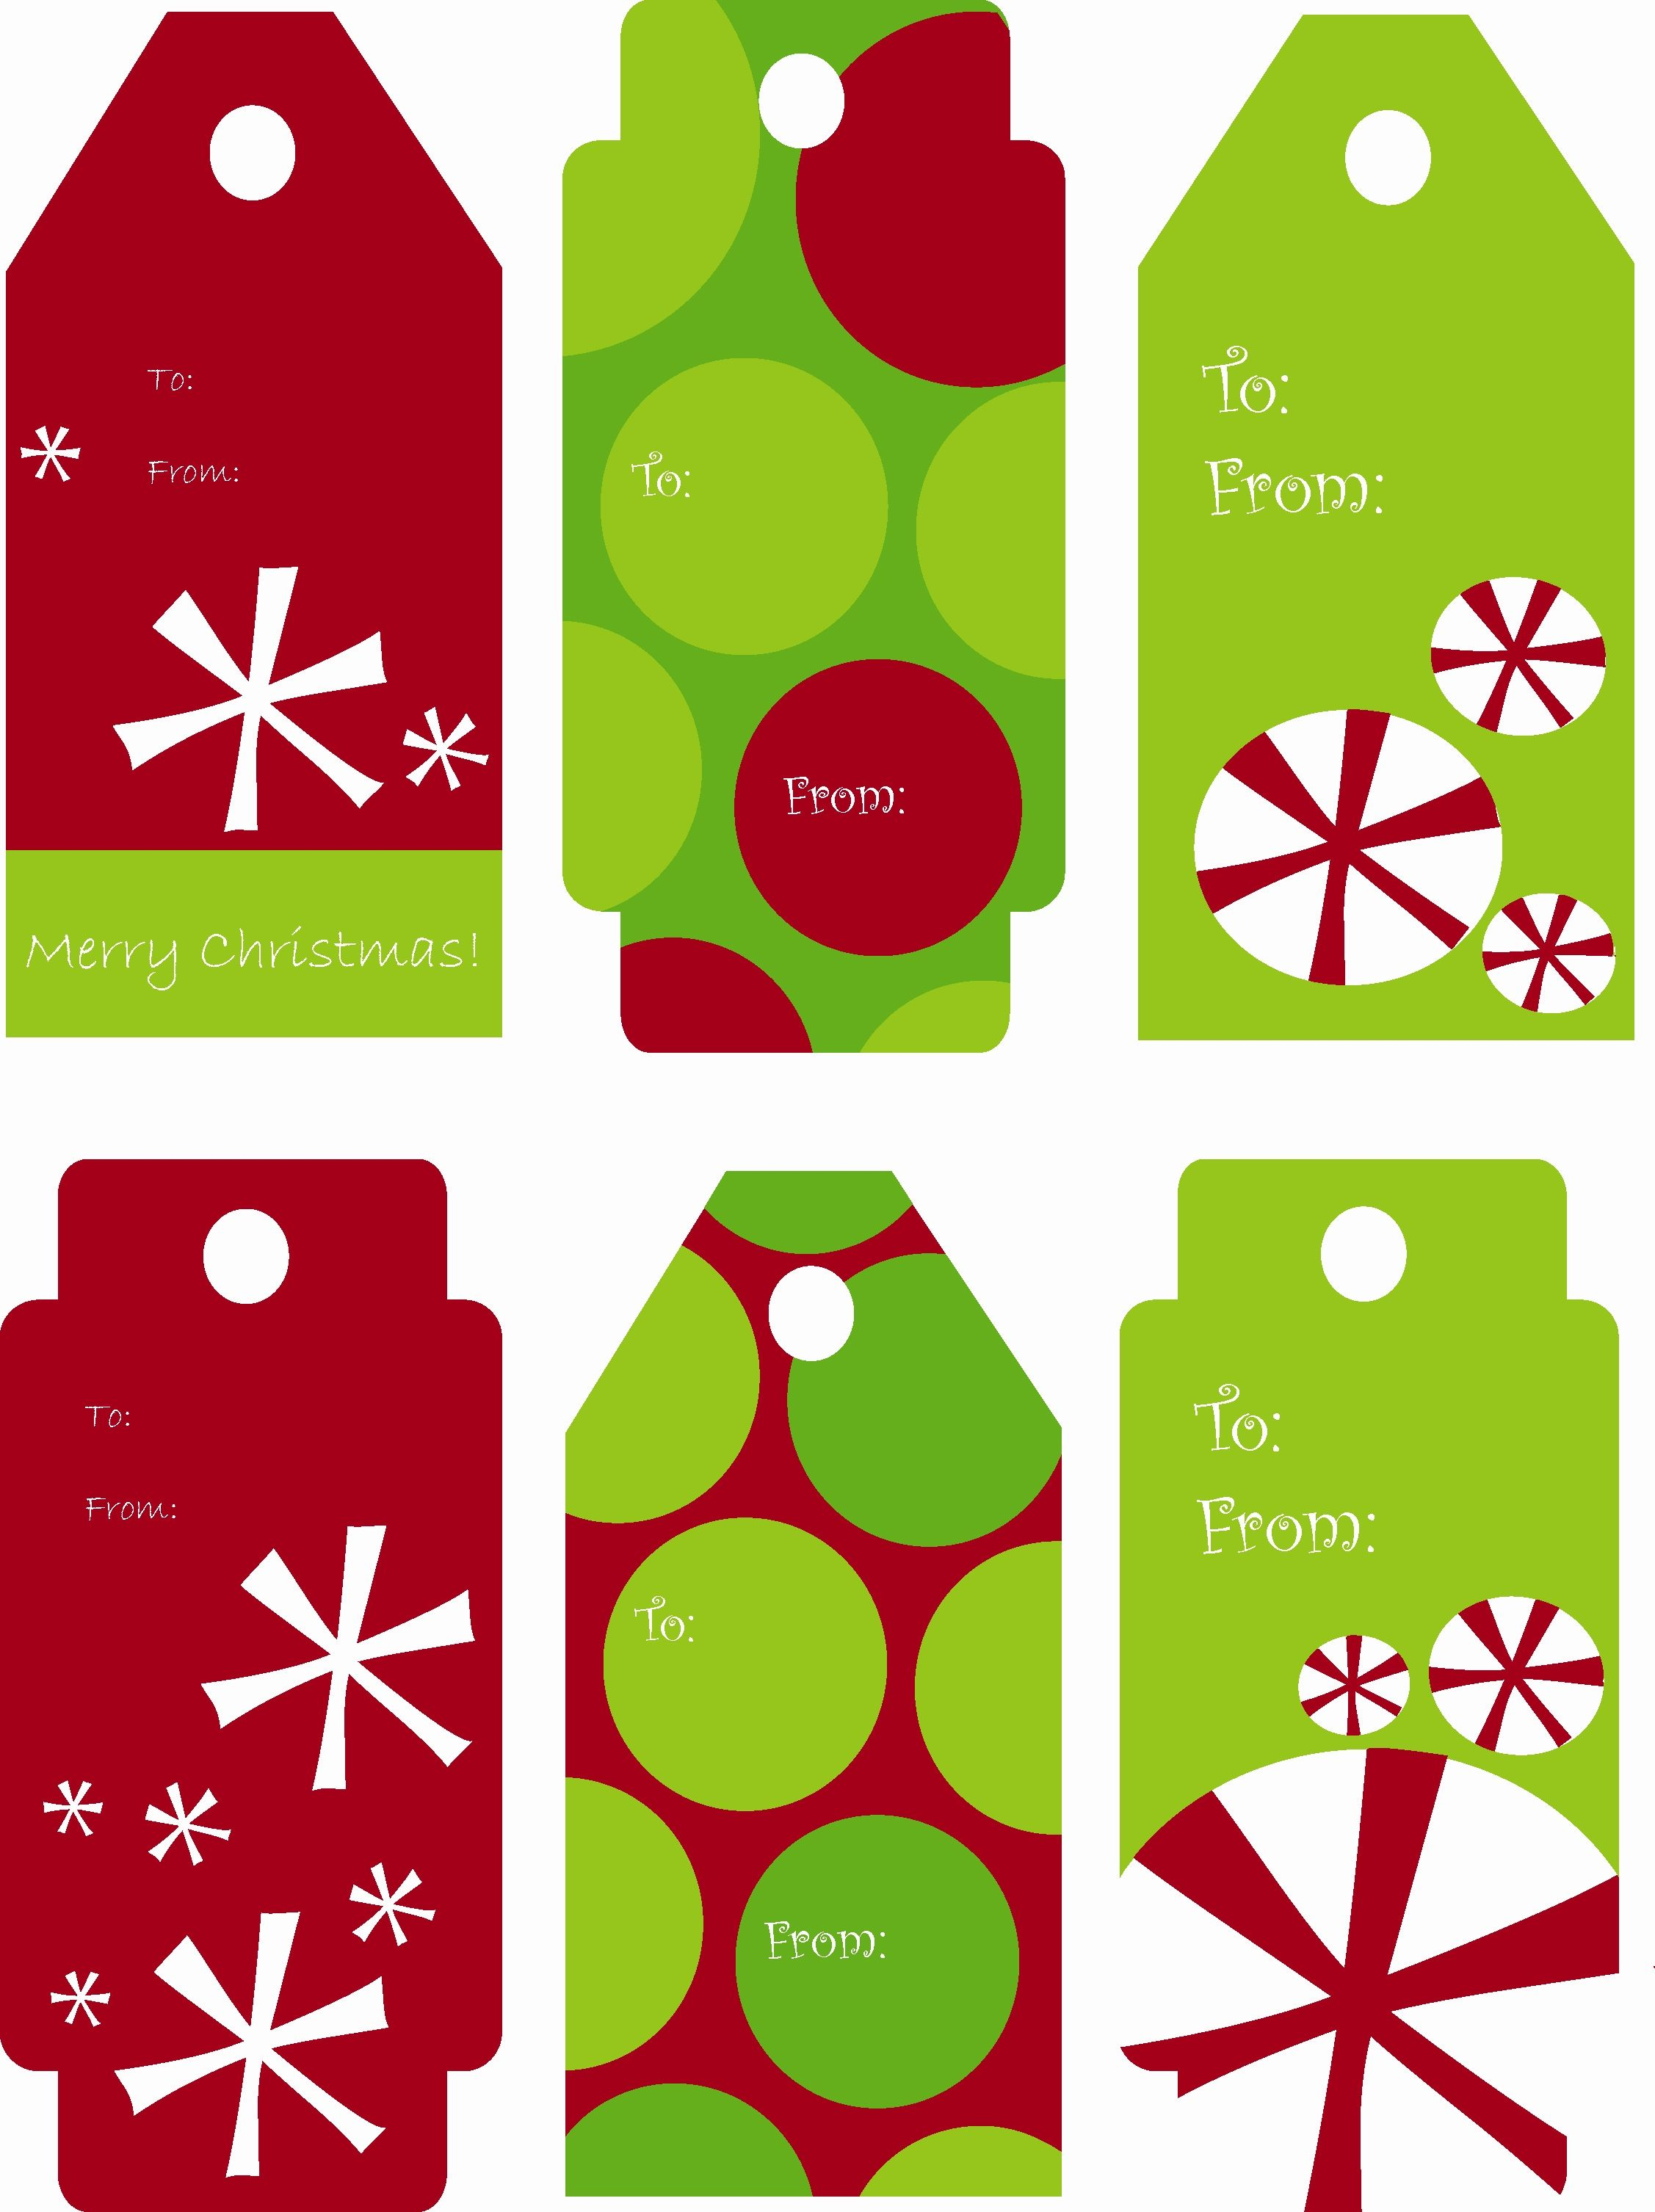 Free christmas gift tags terra verde online for the home pinterest free christmas gift tags terra verde online negle Choice Image